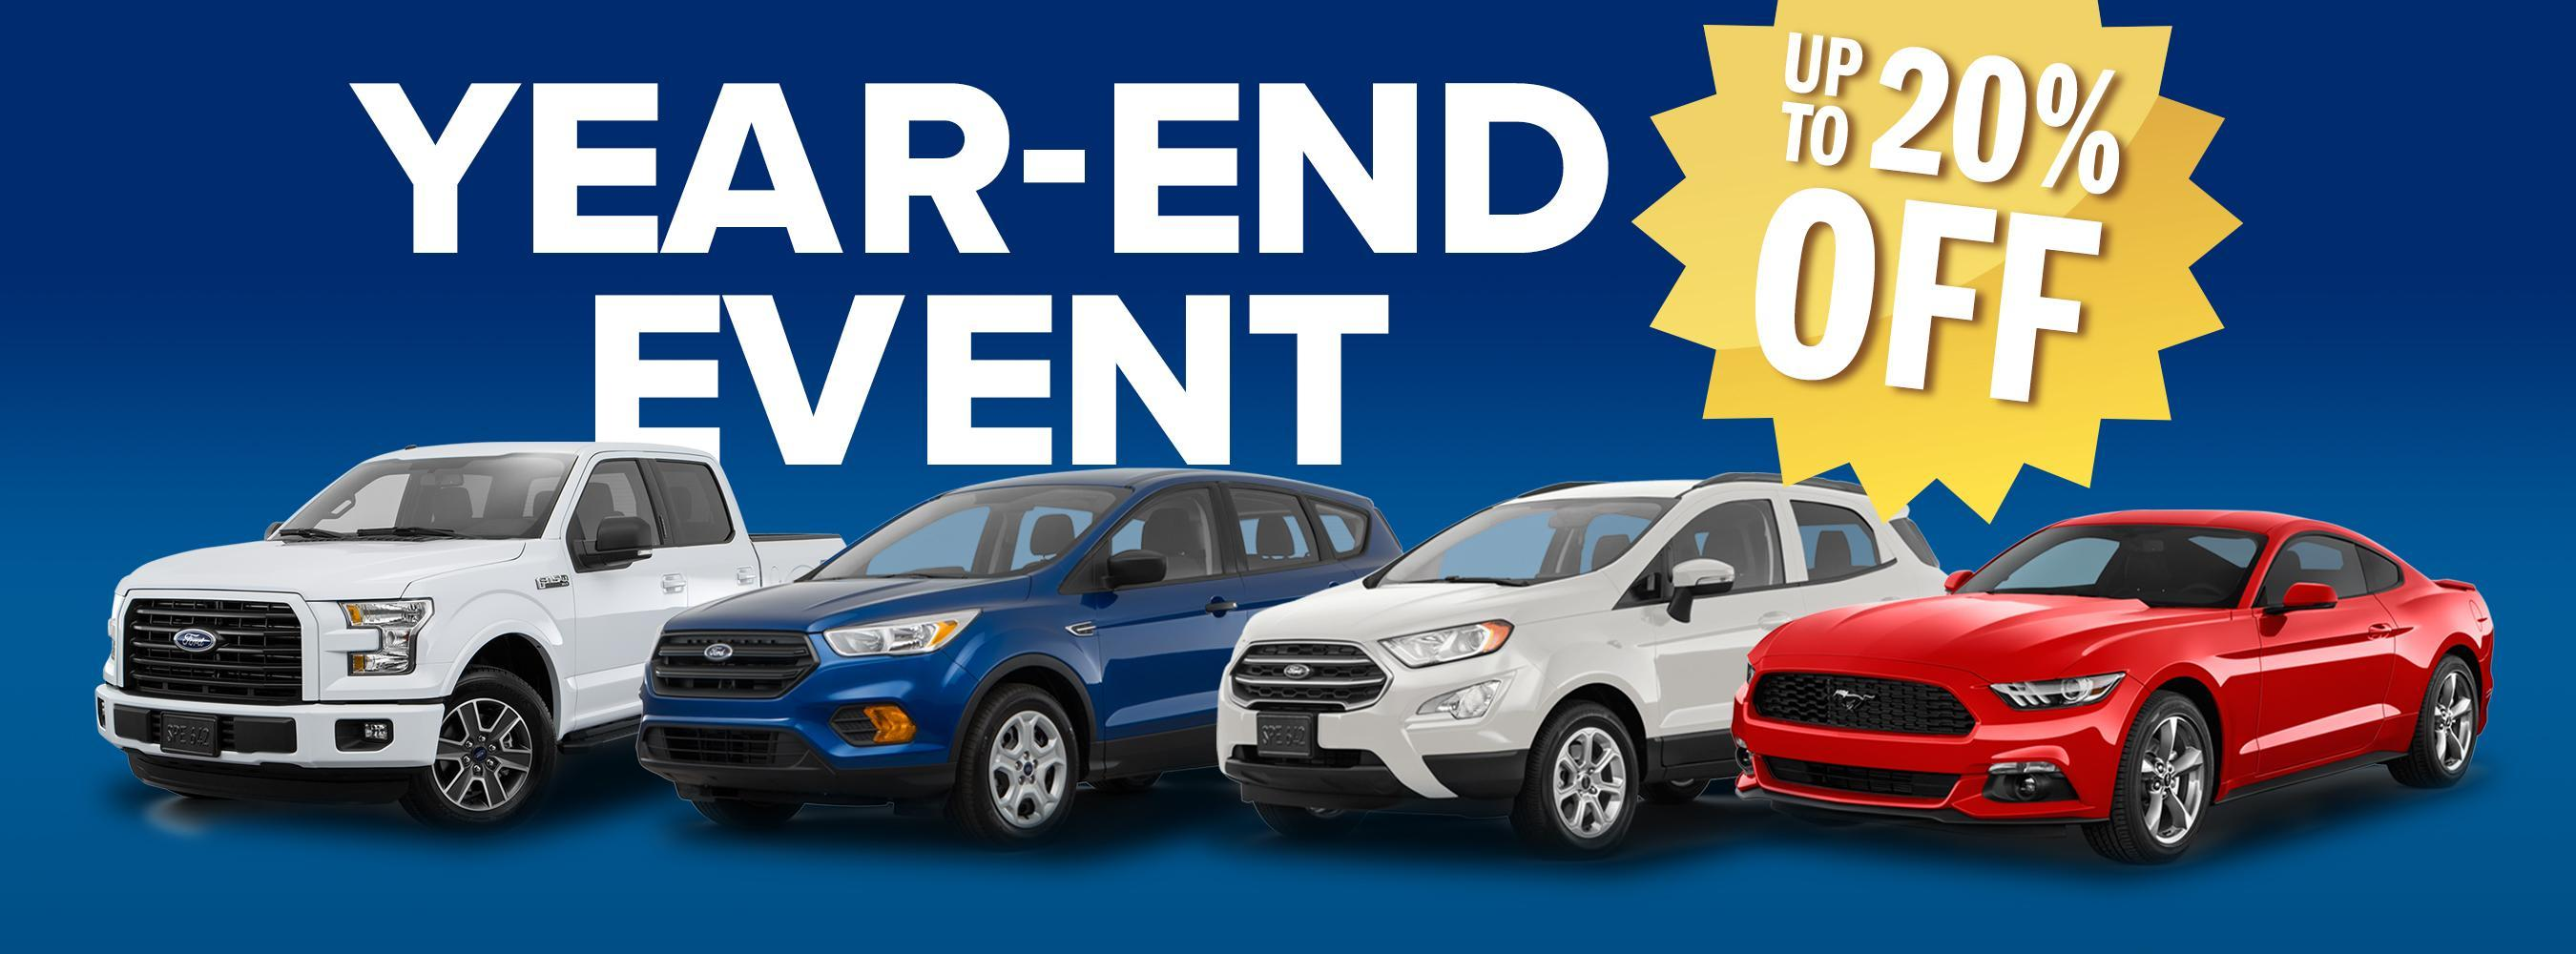 20% Off Year-End Event